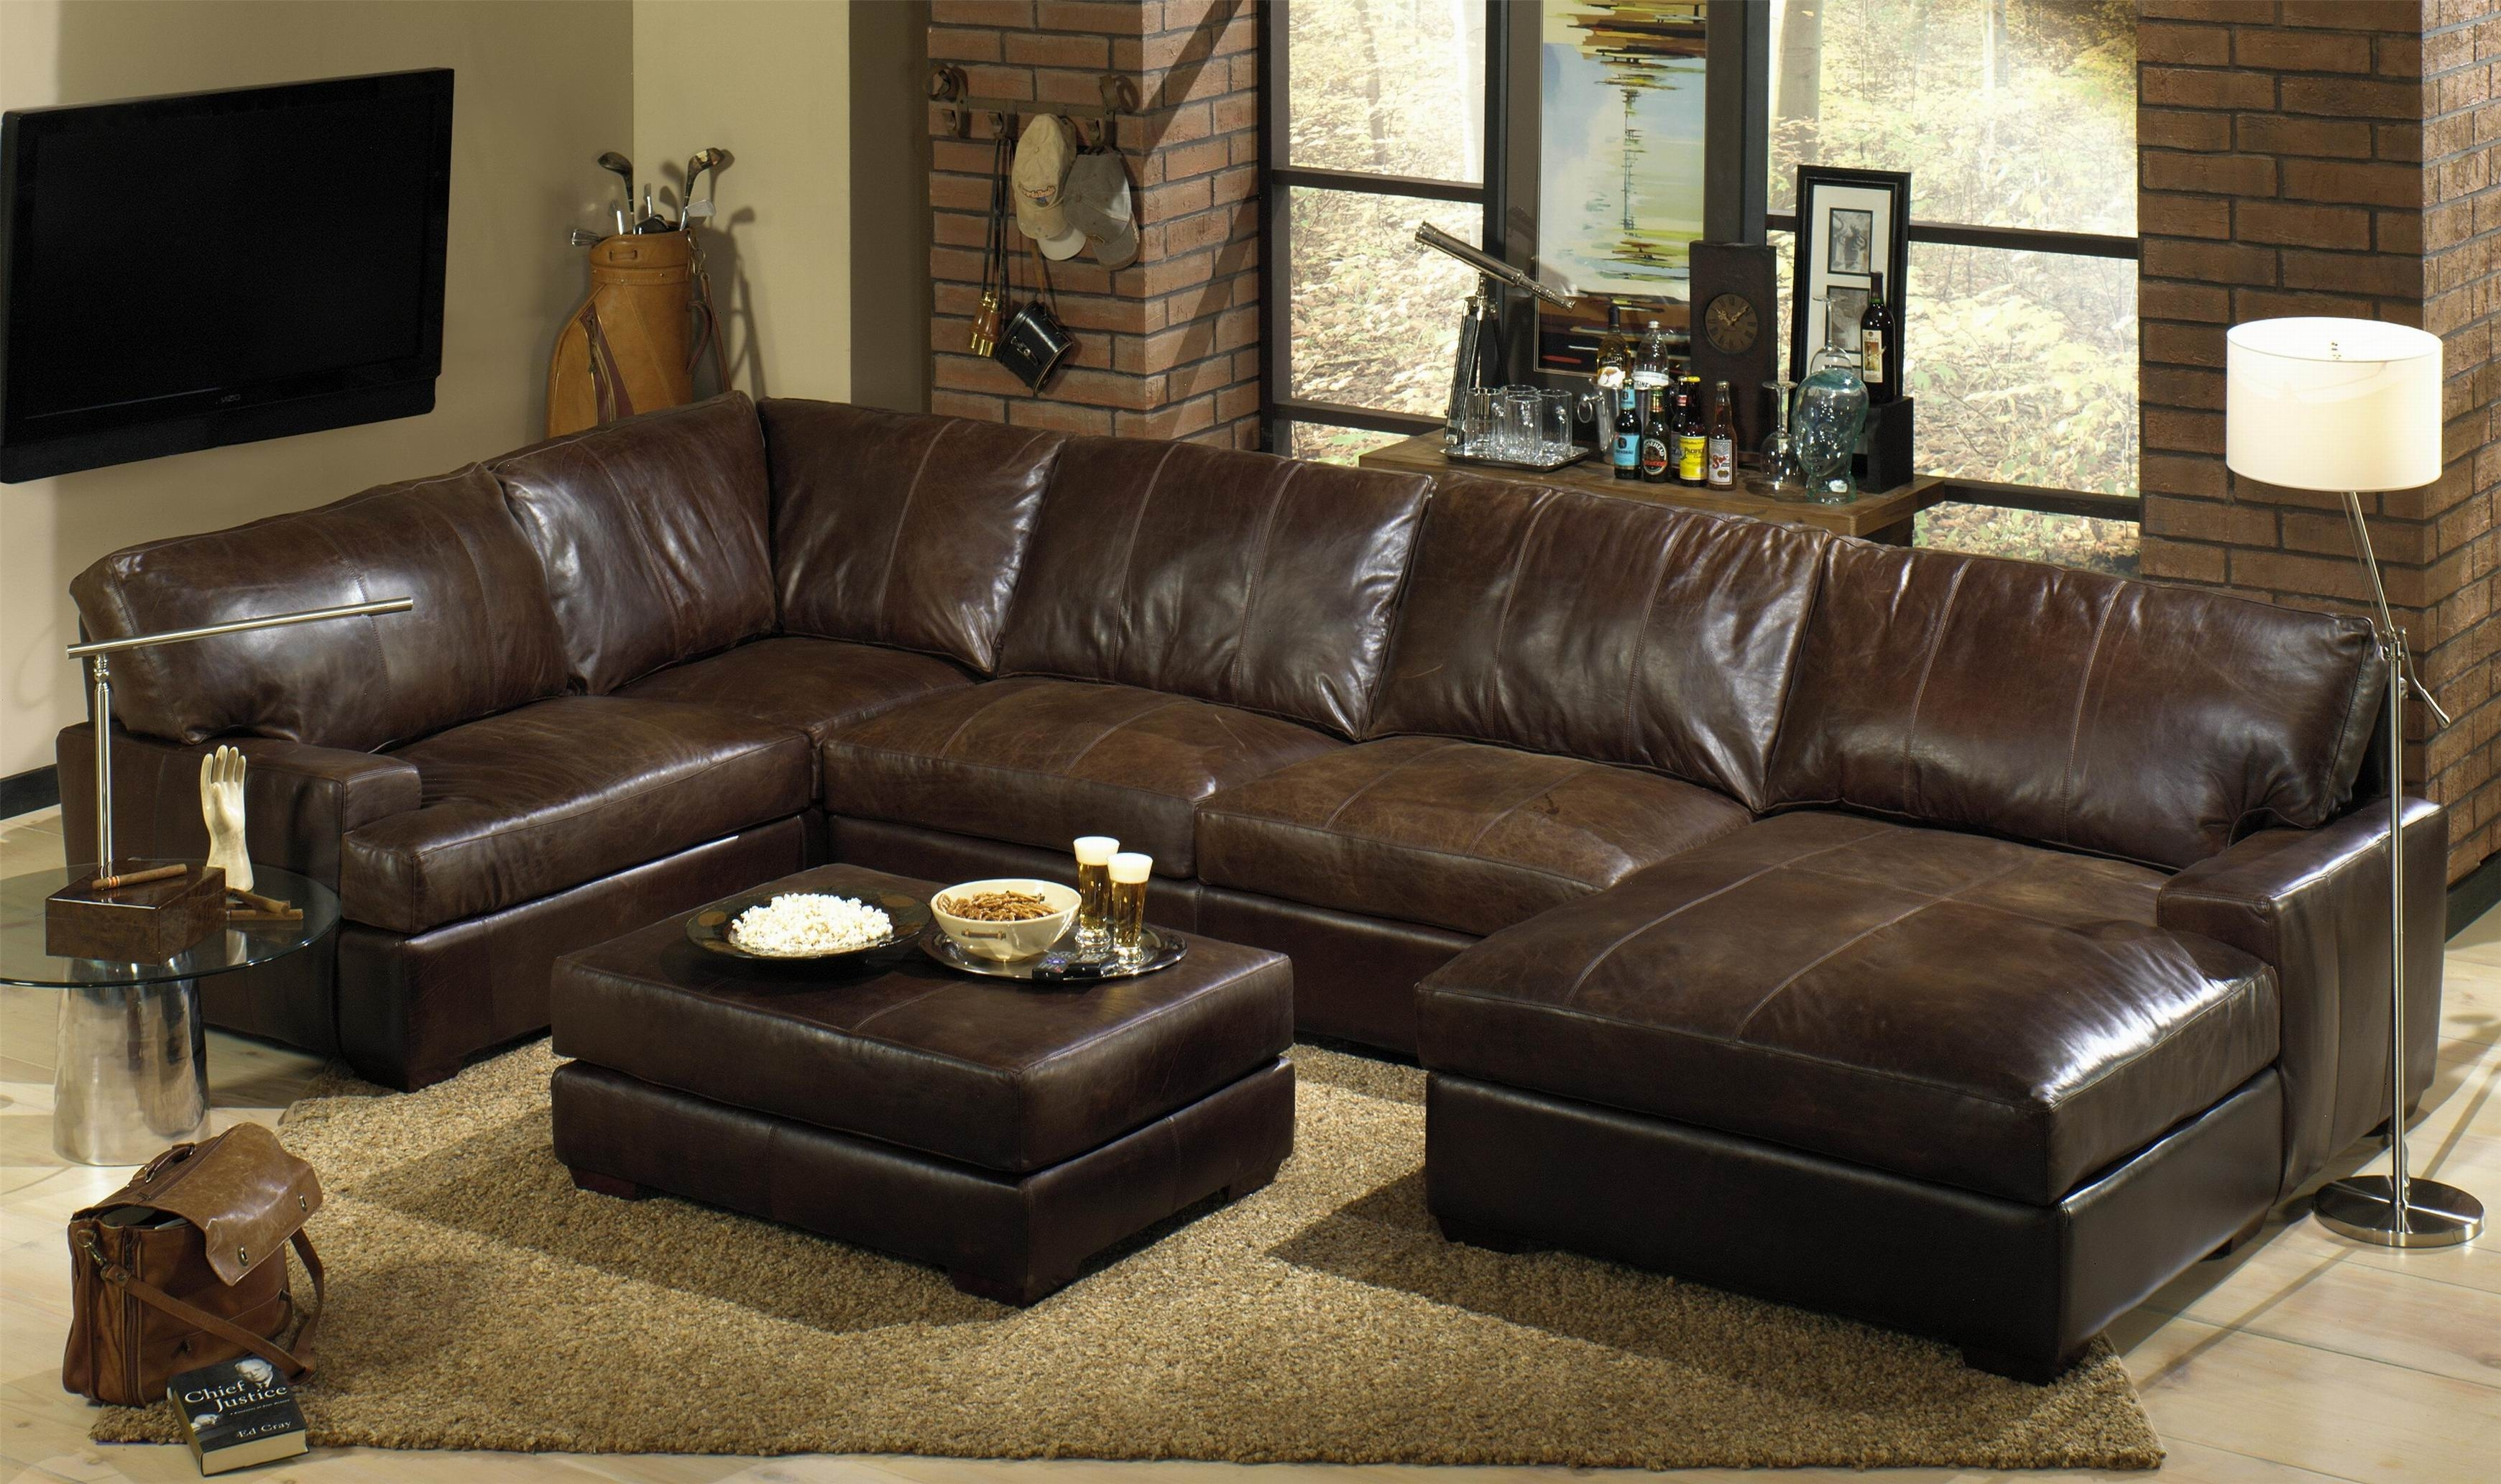 Rectangular Coffee Table With Glass Top Decor Rest Stoney Creek within Vaughan Sectional Sofas (Image 8 of 10)